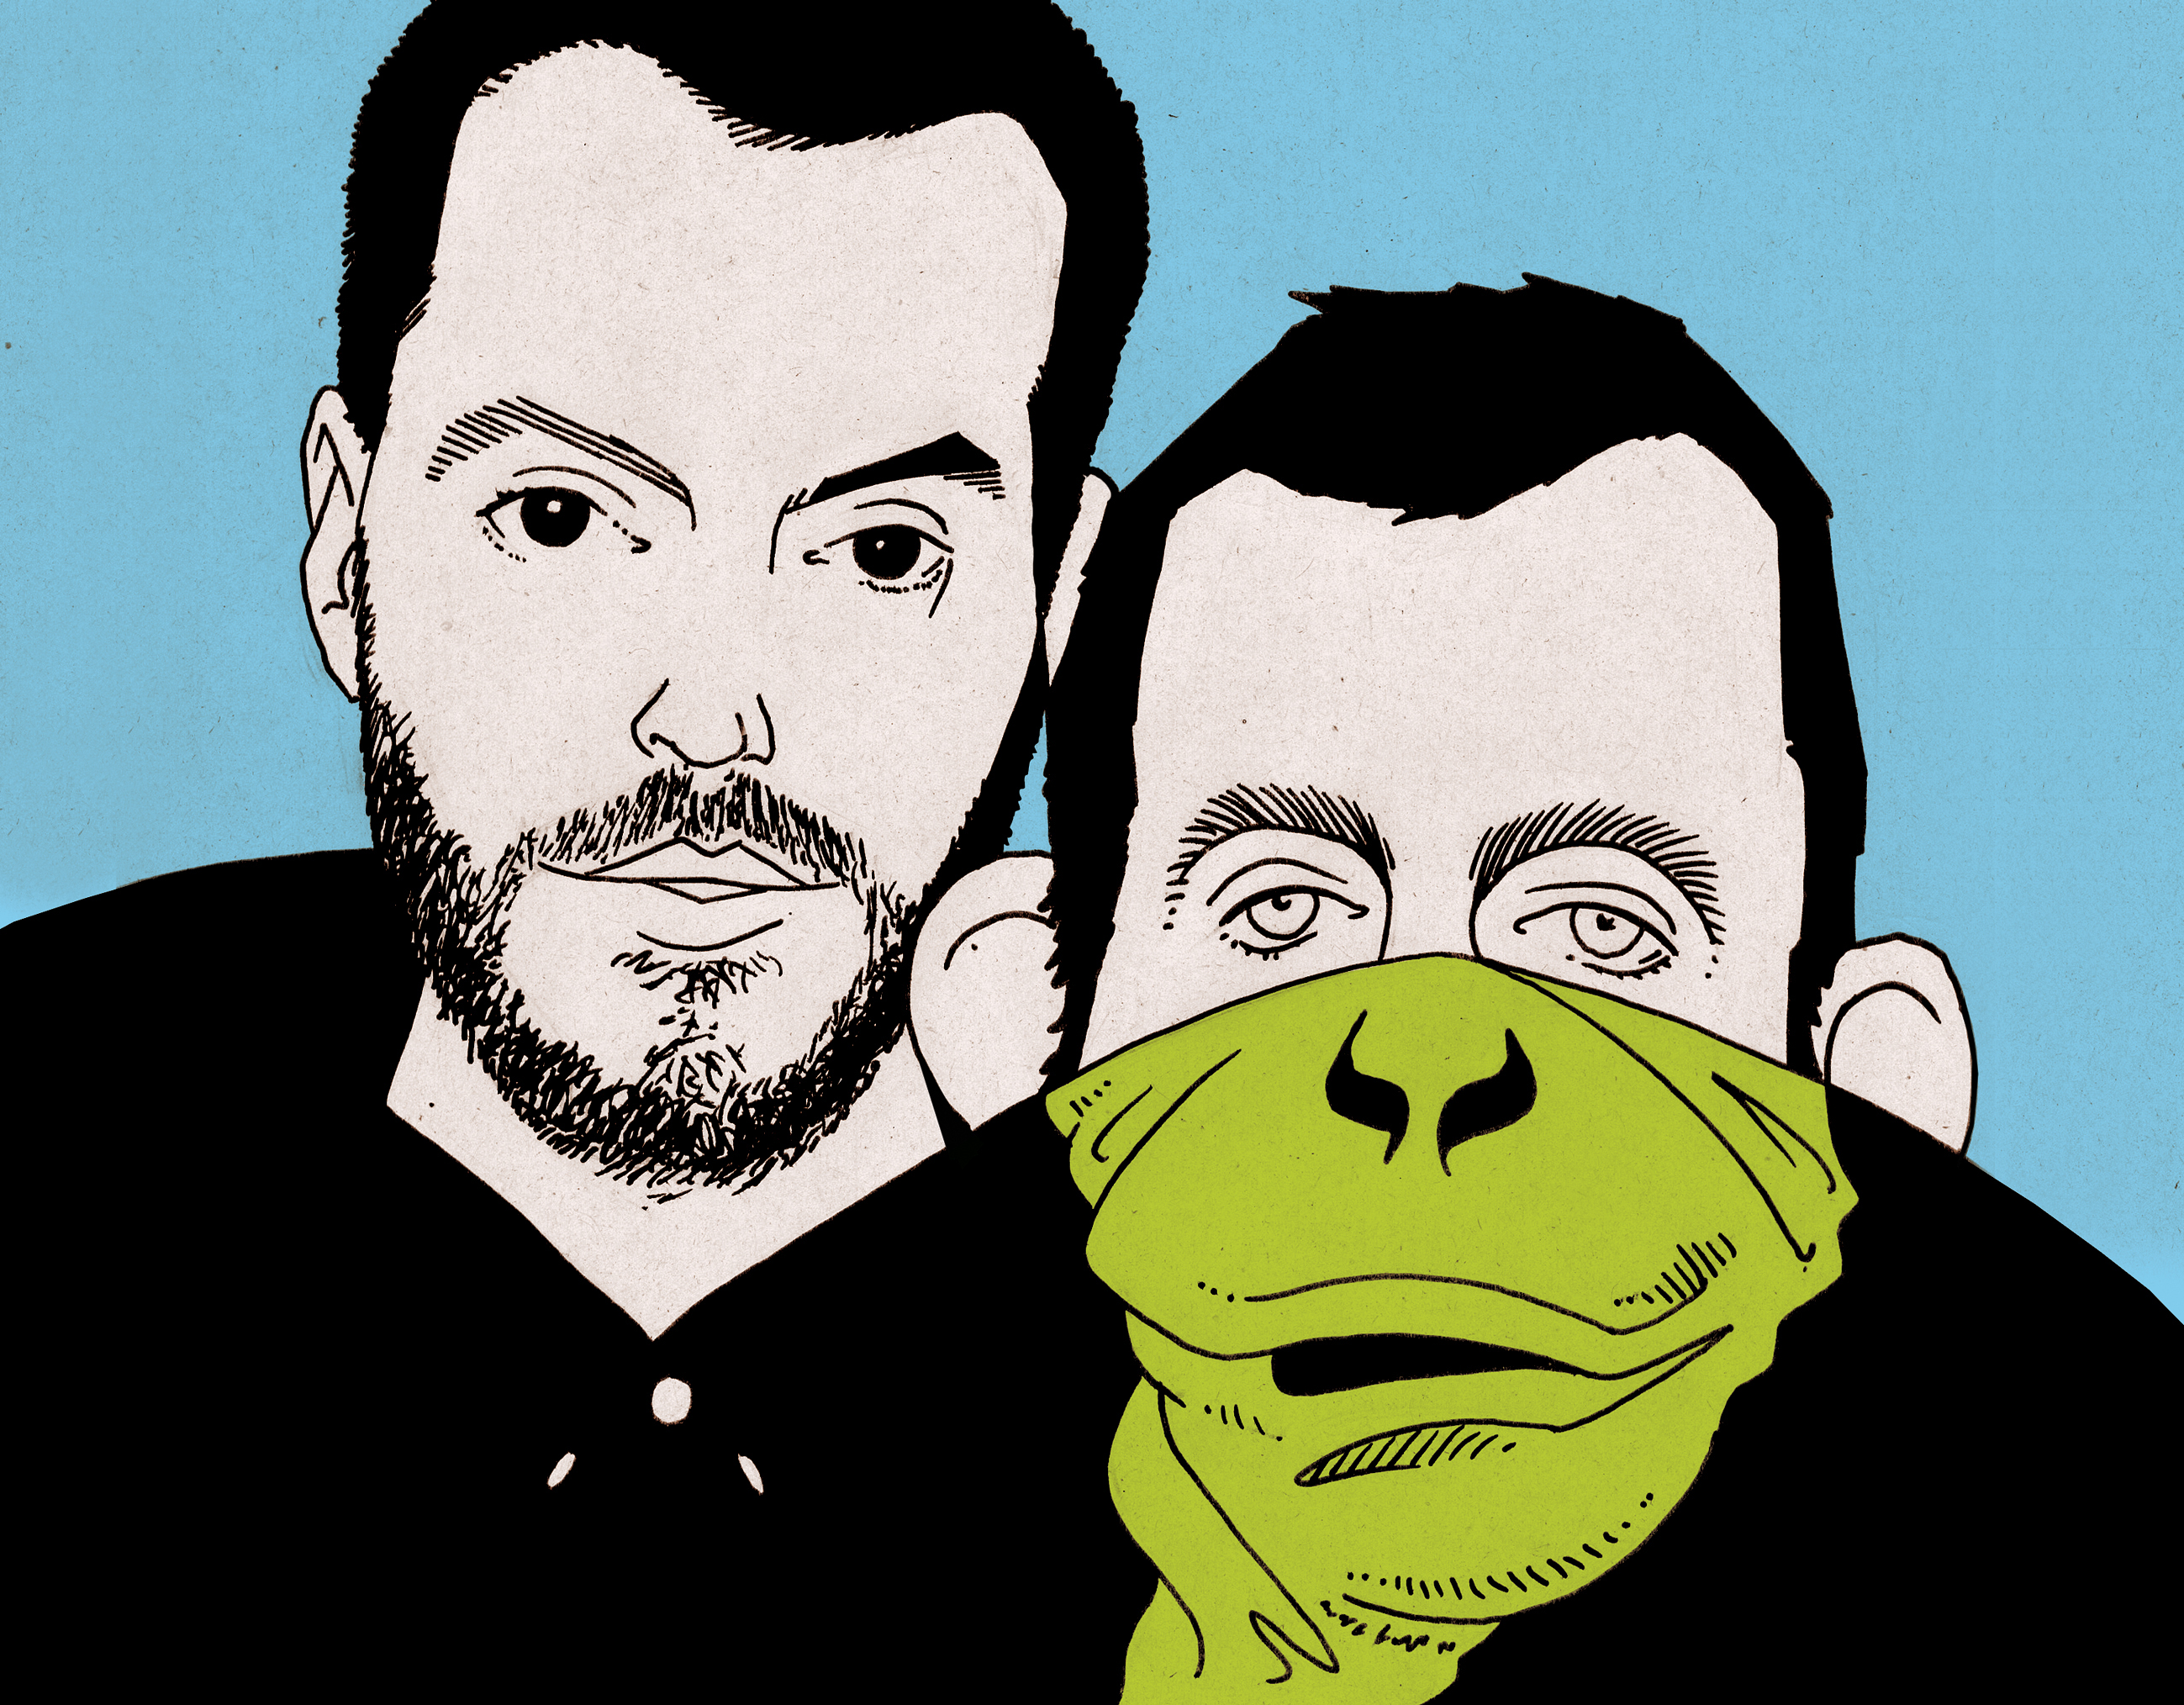 Fracture and Chmpo - FACT mix